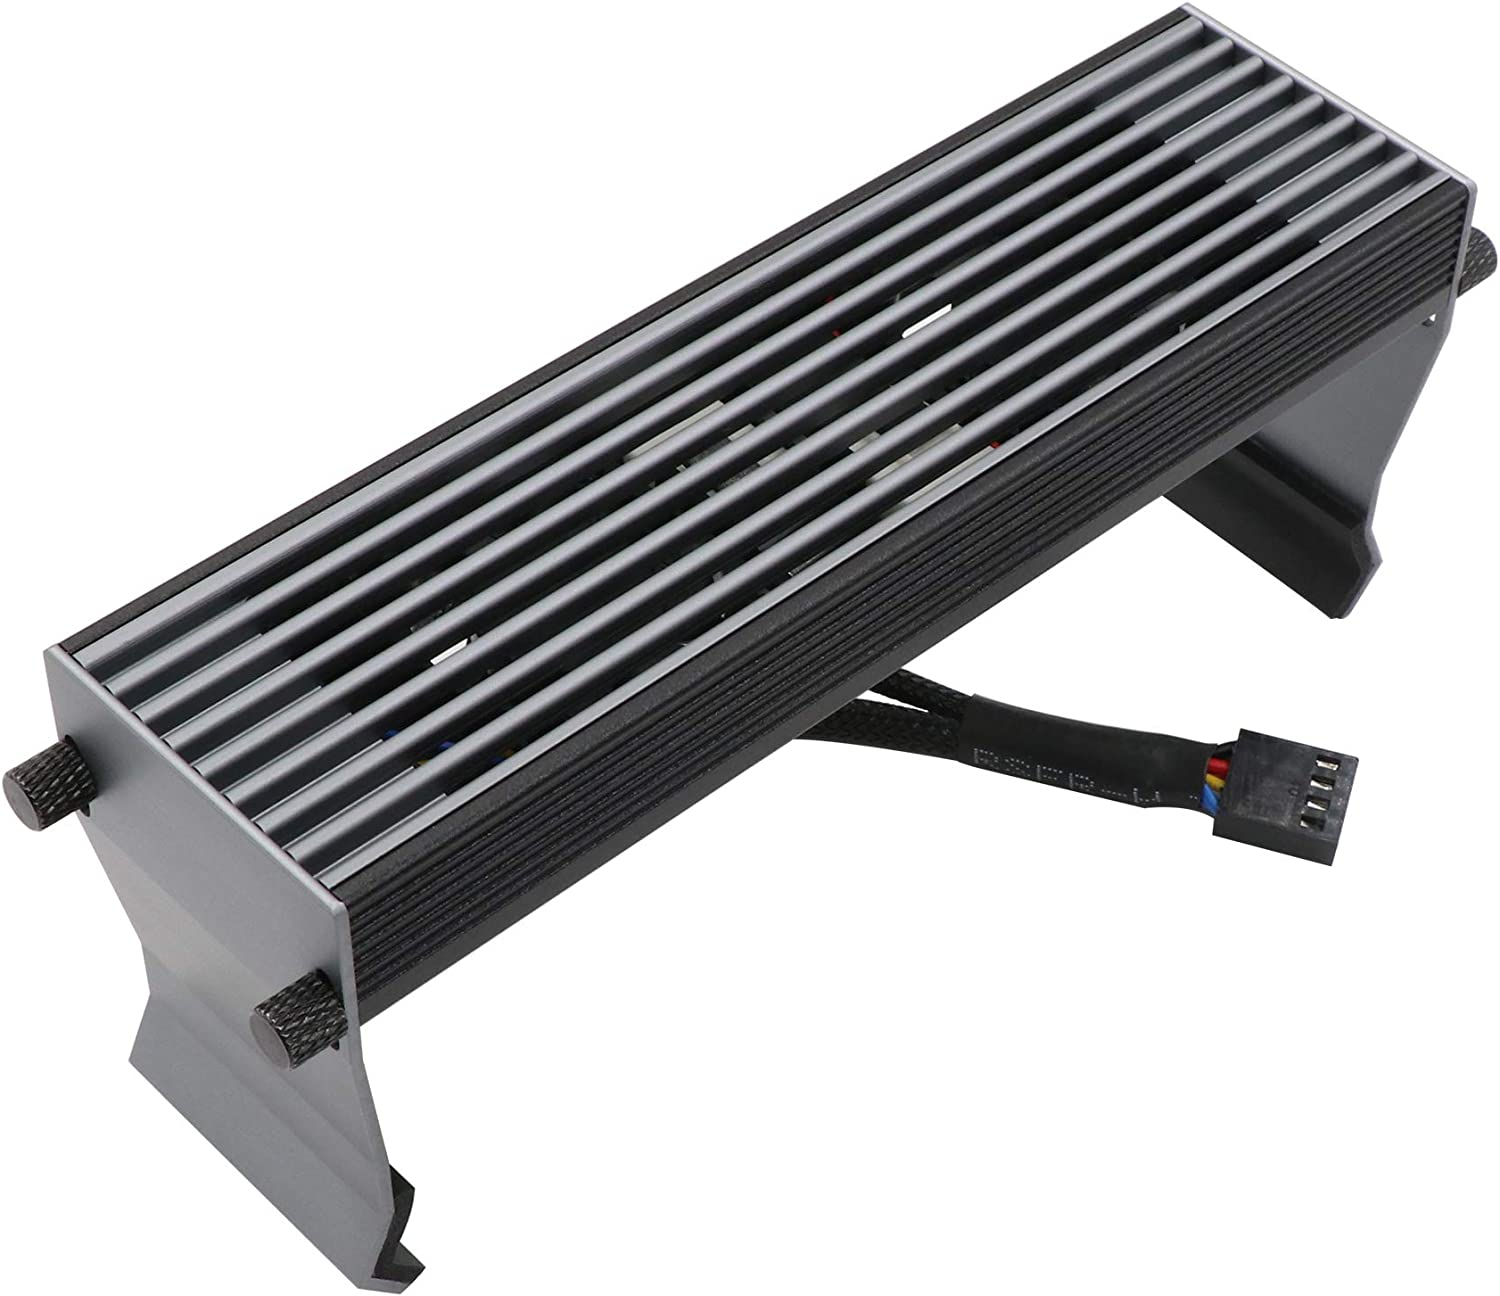 Giryriz Airflow Desktop Memory Cooler Heatsink with 2x30mm Smart Fans, Speed Up to 10000RPM (DMC-U1)